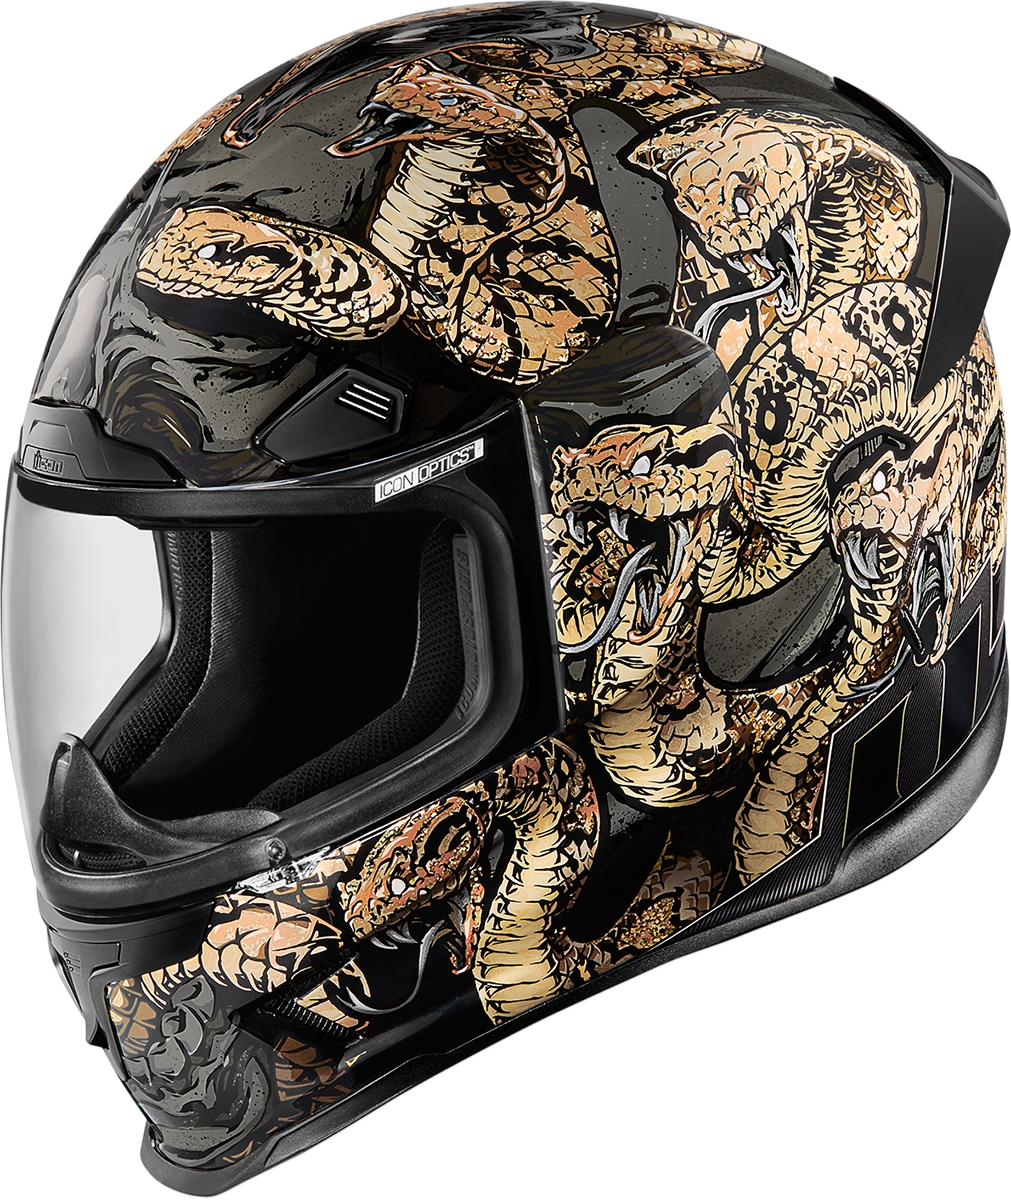 Airframe Pro Cottonmouth Graphic Helmet